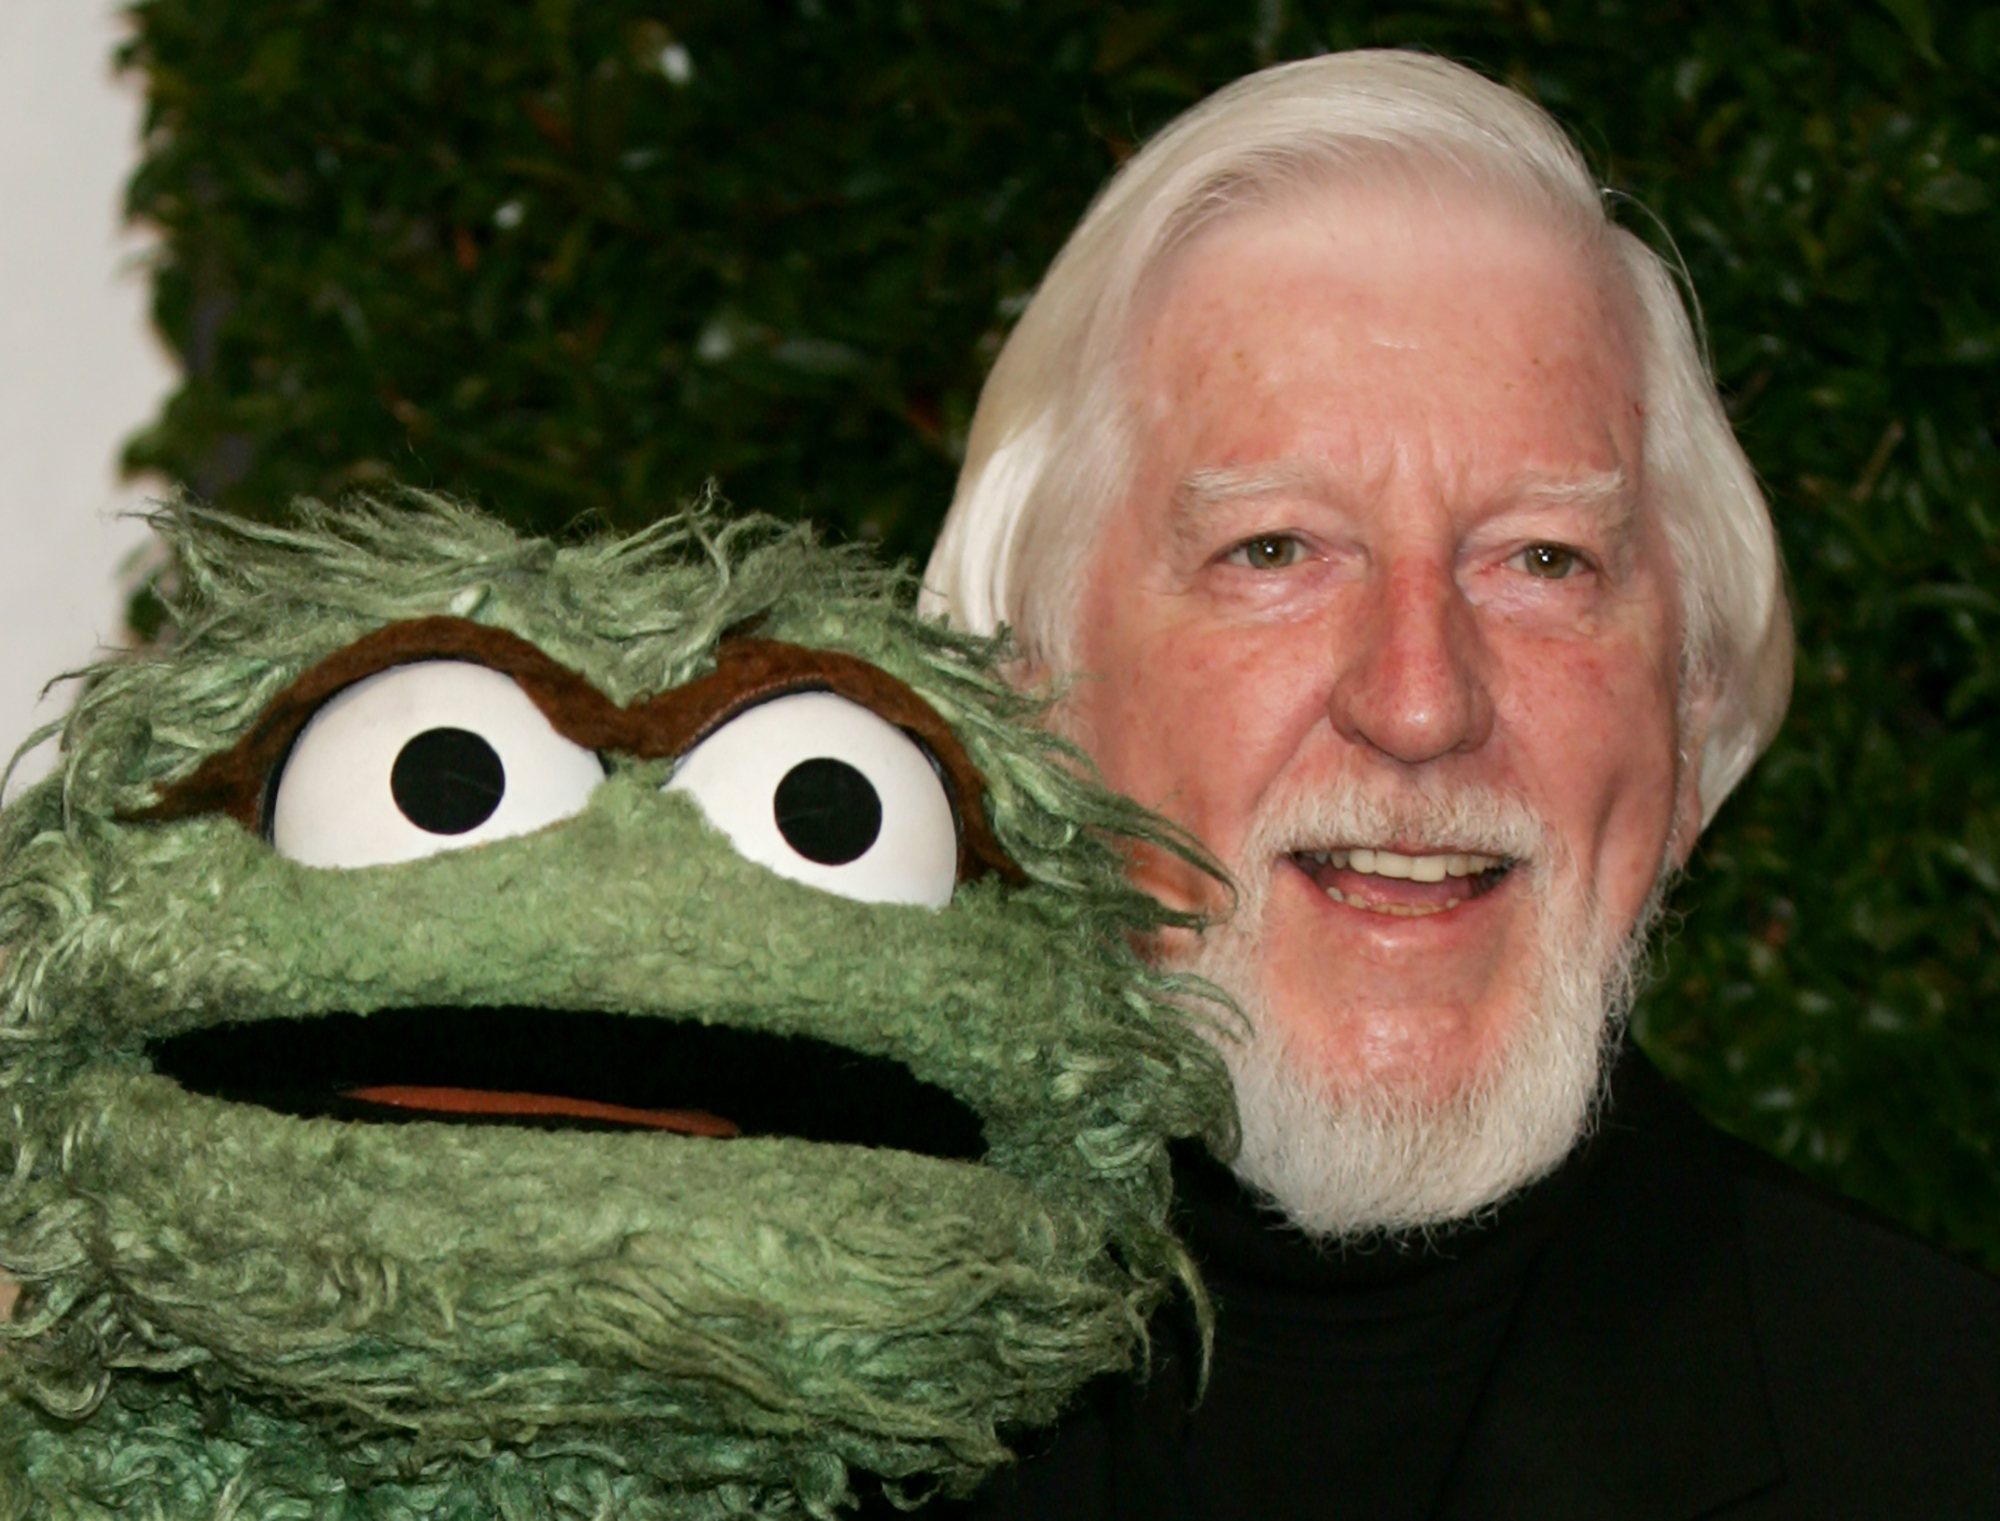 """FILE - In this Thursday, April 27, 2006, file photo, Caroll Spinney, right, who portrays """"Sesame Street"""" characters Oscar The Grouch, left, and Big Bird, arrives for the Daytime Emmy nominee party at the Hollywood Roosevelt Hotel in Los Angeles. Spinney, who gave Big Bird his warmth and Oscar the Grouch his growl for nearly 50 years on """"Sesame Street,"""" died Sunday, Dec. 8, 2019, at the age of 85 at his home in Connecticut, according to the Sesame Workshop. (AP Photo/Reed Saxon, File)"""